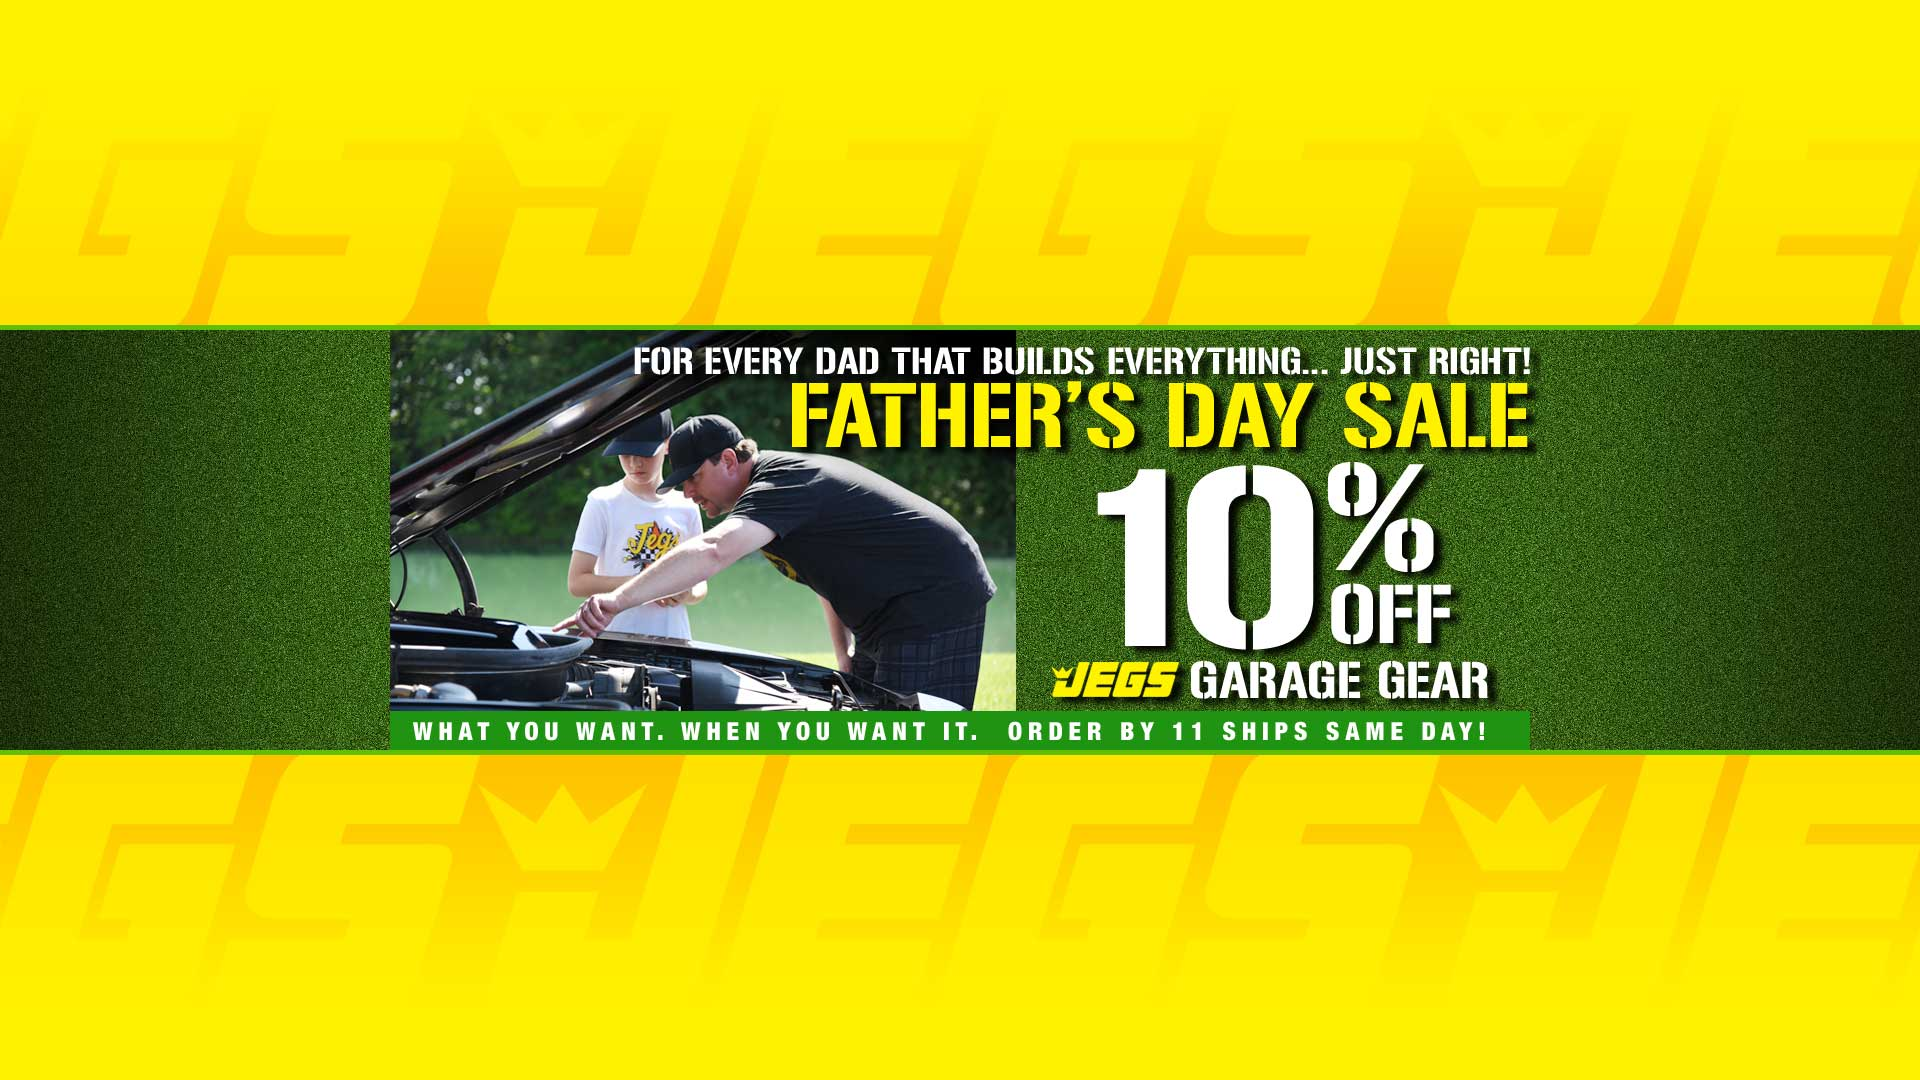 Father's Day Sale - 10% off JEGS Garage Gear